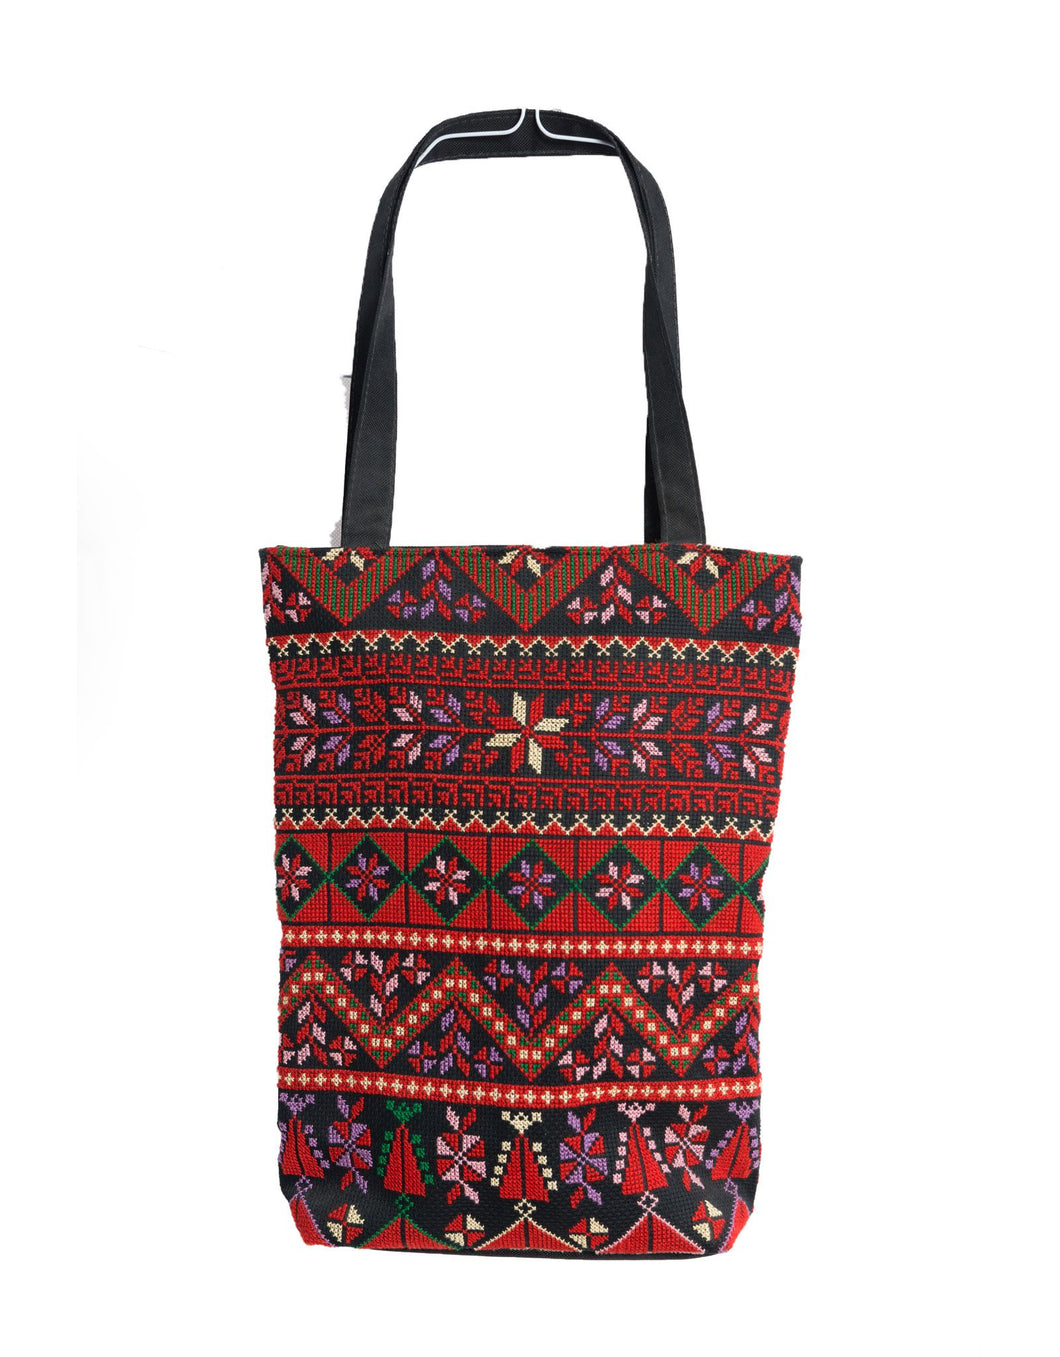 Hand embroidered shopper bag with DMC threads